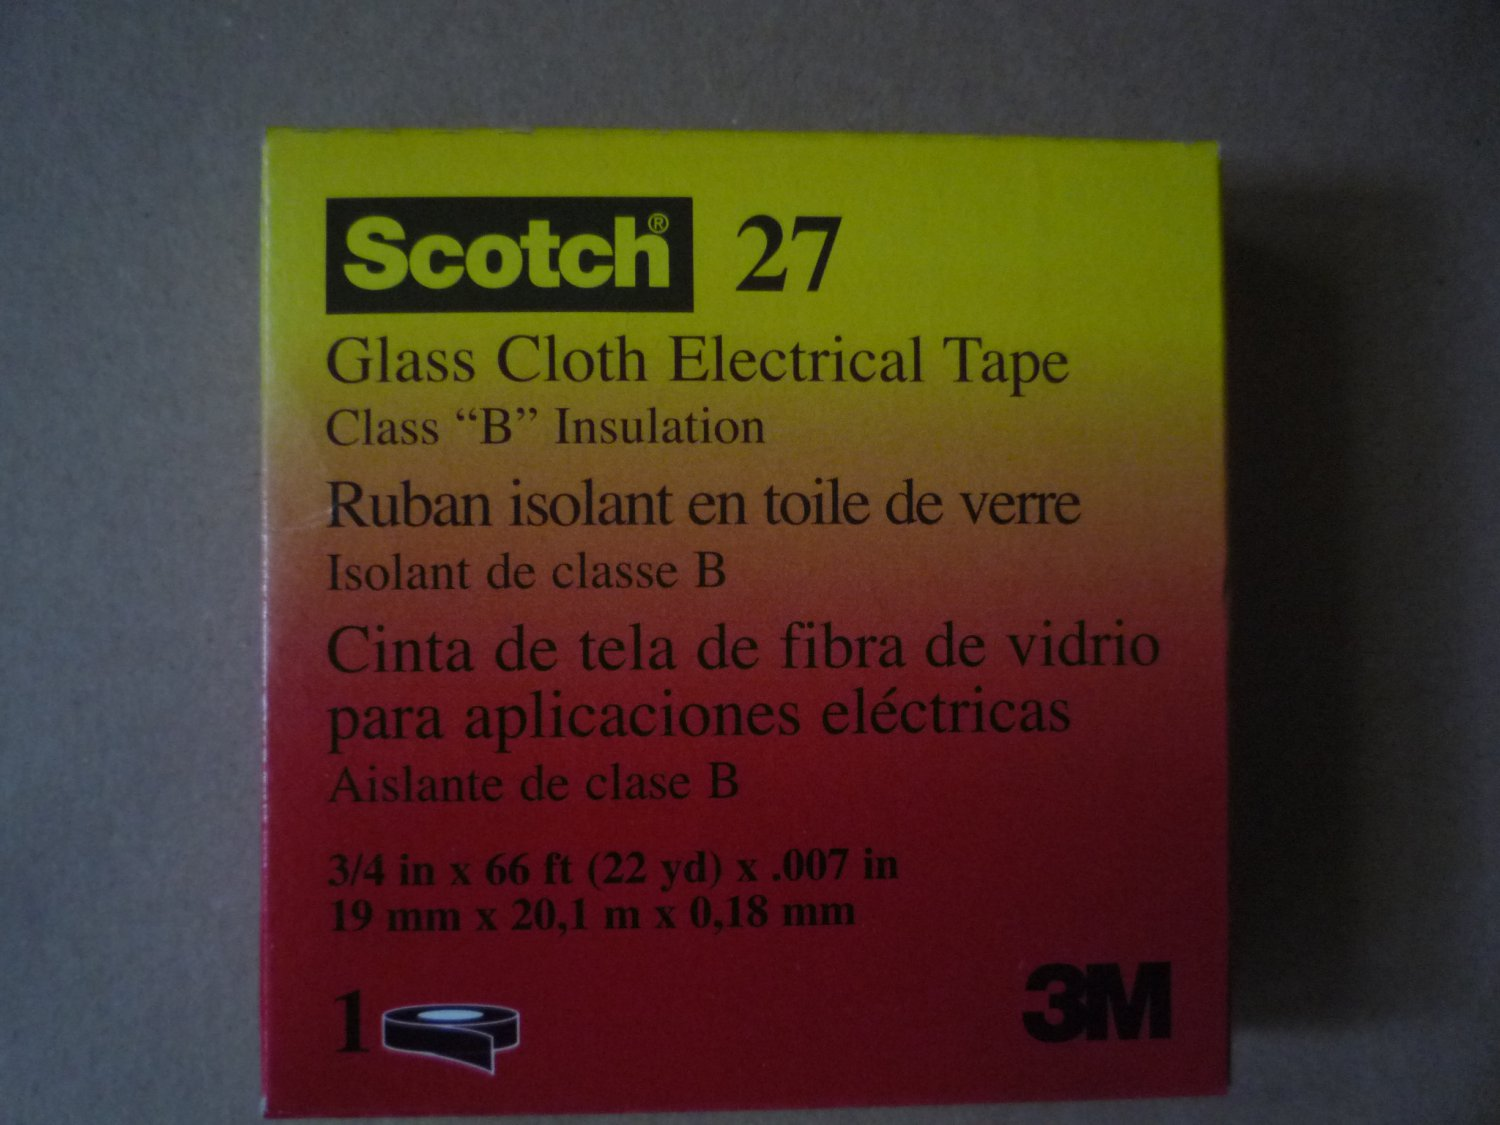 Scotch Tape 27 3/4 inch x 66 ft Electrical tape